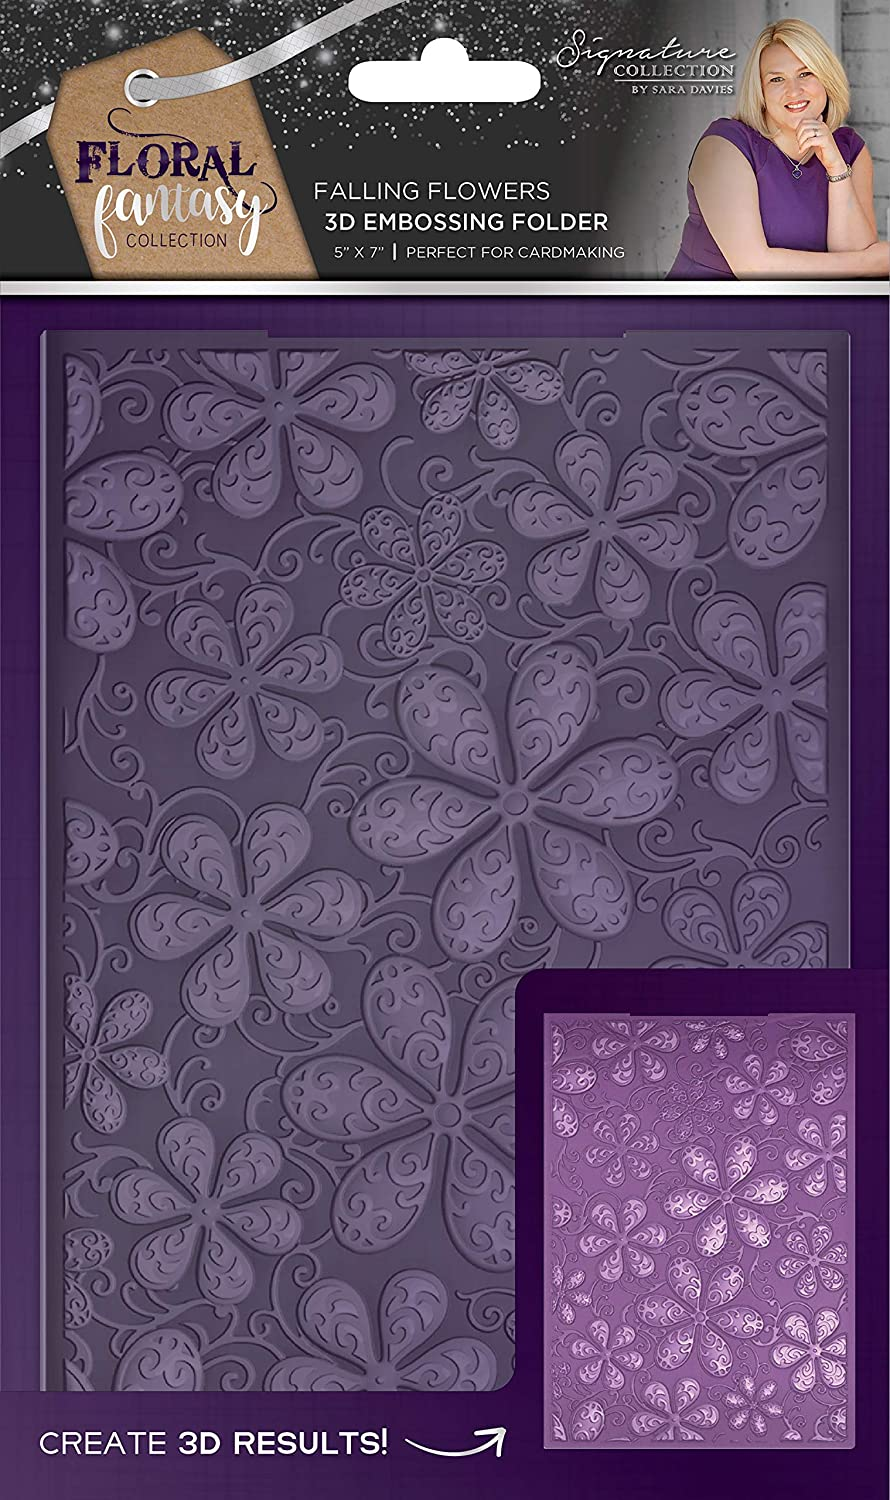 Sara's Signature S-FF-EF5-3D-FALL Floral Fantasy Falling Flowers 5' x 7' 3D Embossing Folder, White Crafter' s Companion